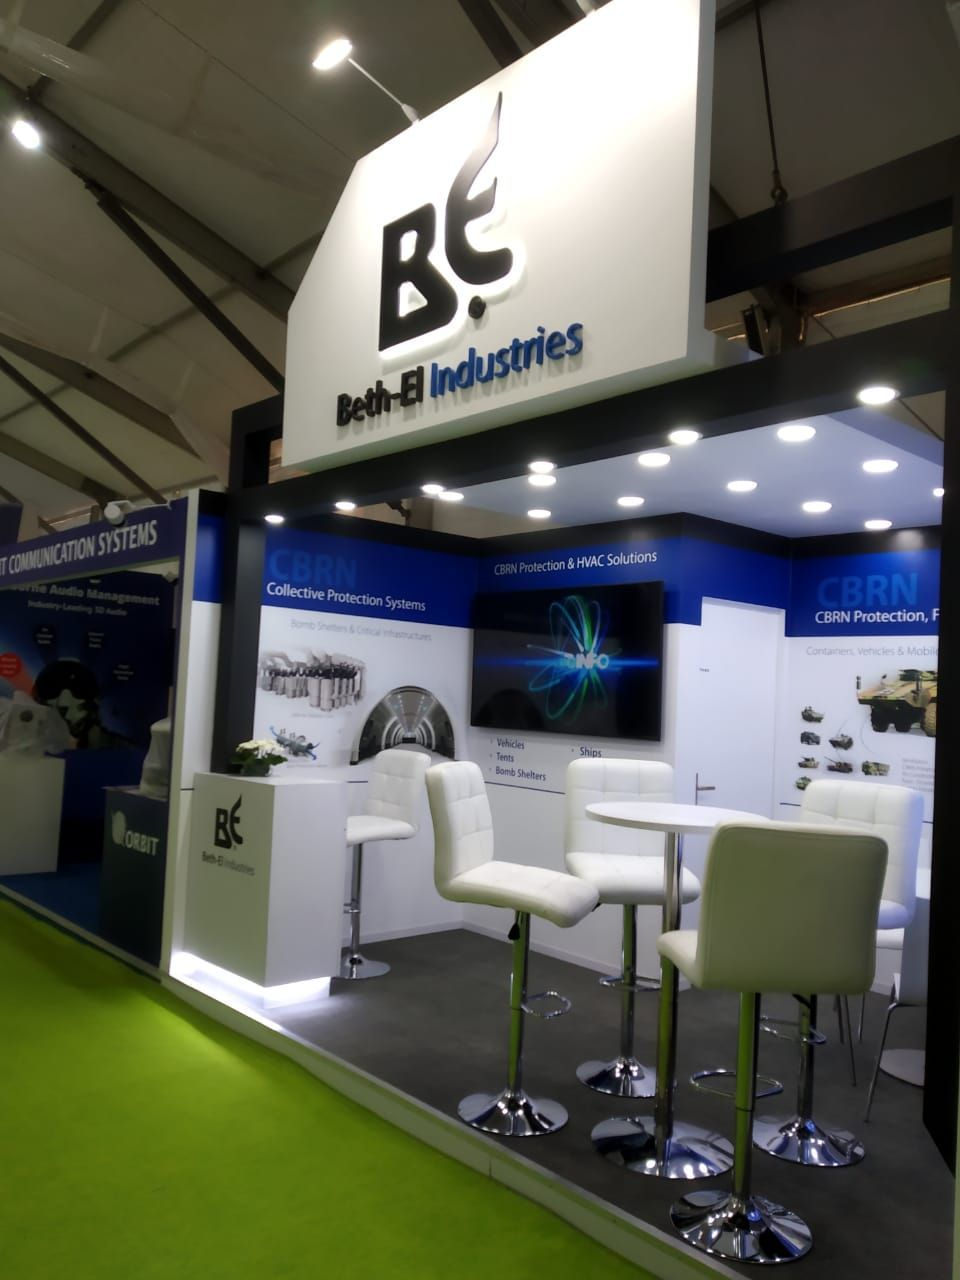 Sconce Global Exceeds Itself Yet Again Our Team Has Built A Custom Modular Booth For Beth Ei At Defexpo In Luckn In 2020 Event Booth Design Event Booth Booth Design